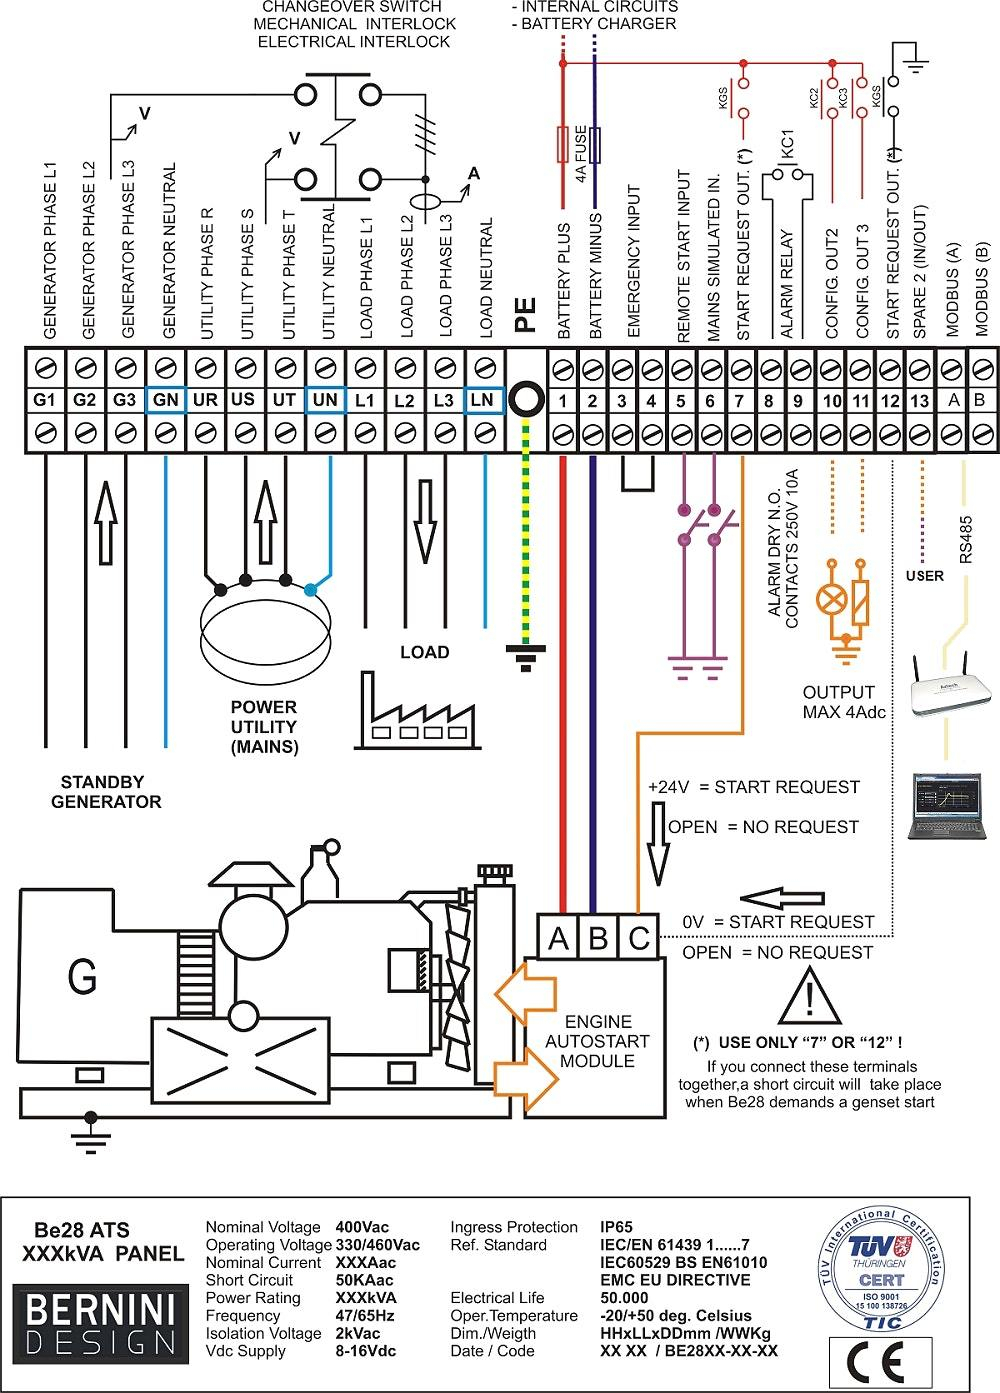 generac wiring diagram Collection-an Transfer Switch Wiring Diagram Collection Generac Automatic Transfer Switch Wiring Diagram At To 11 16-s